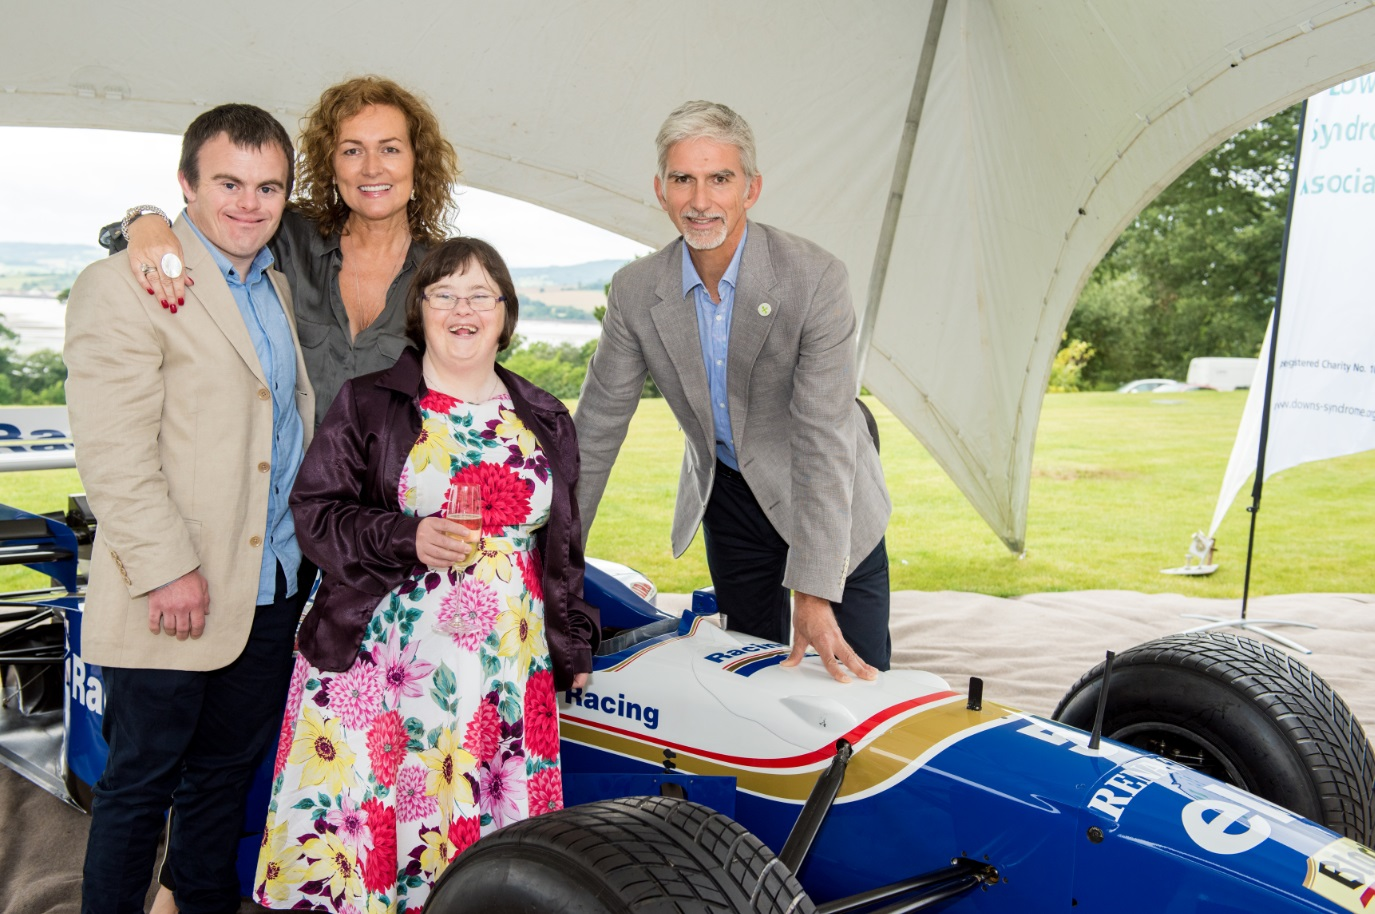 michael caines, damon hill, exeter golf and country club, downs syndrome charities, golf day